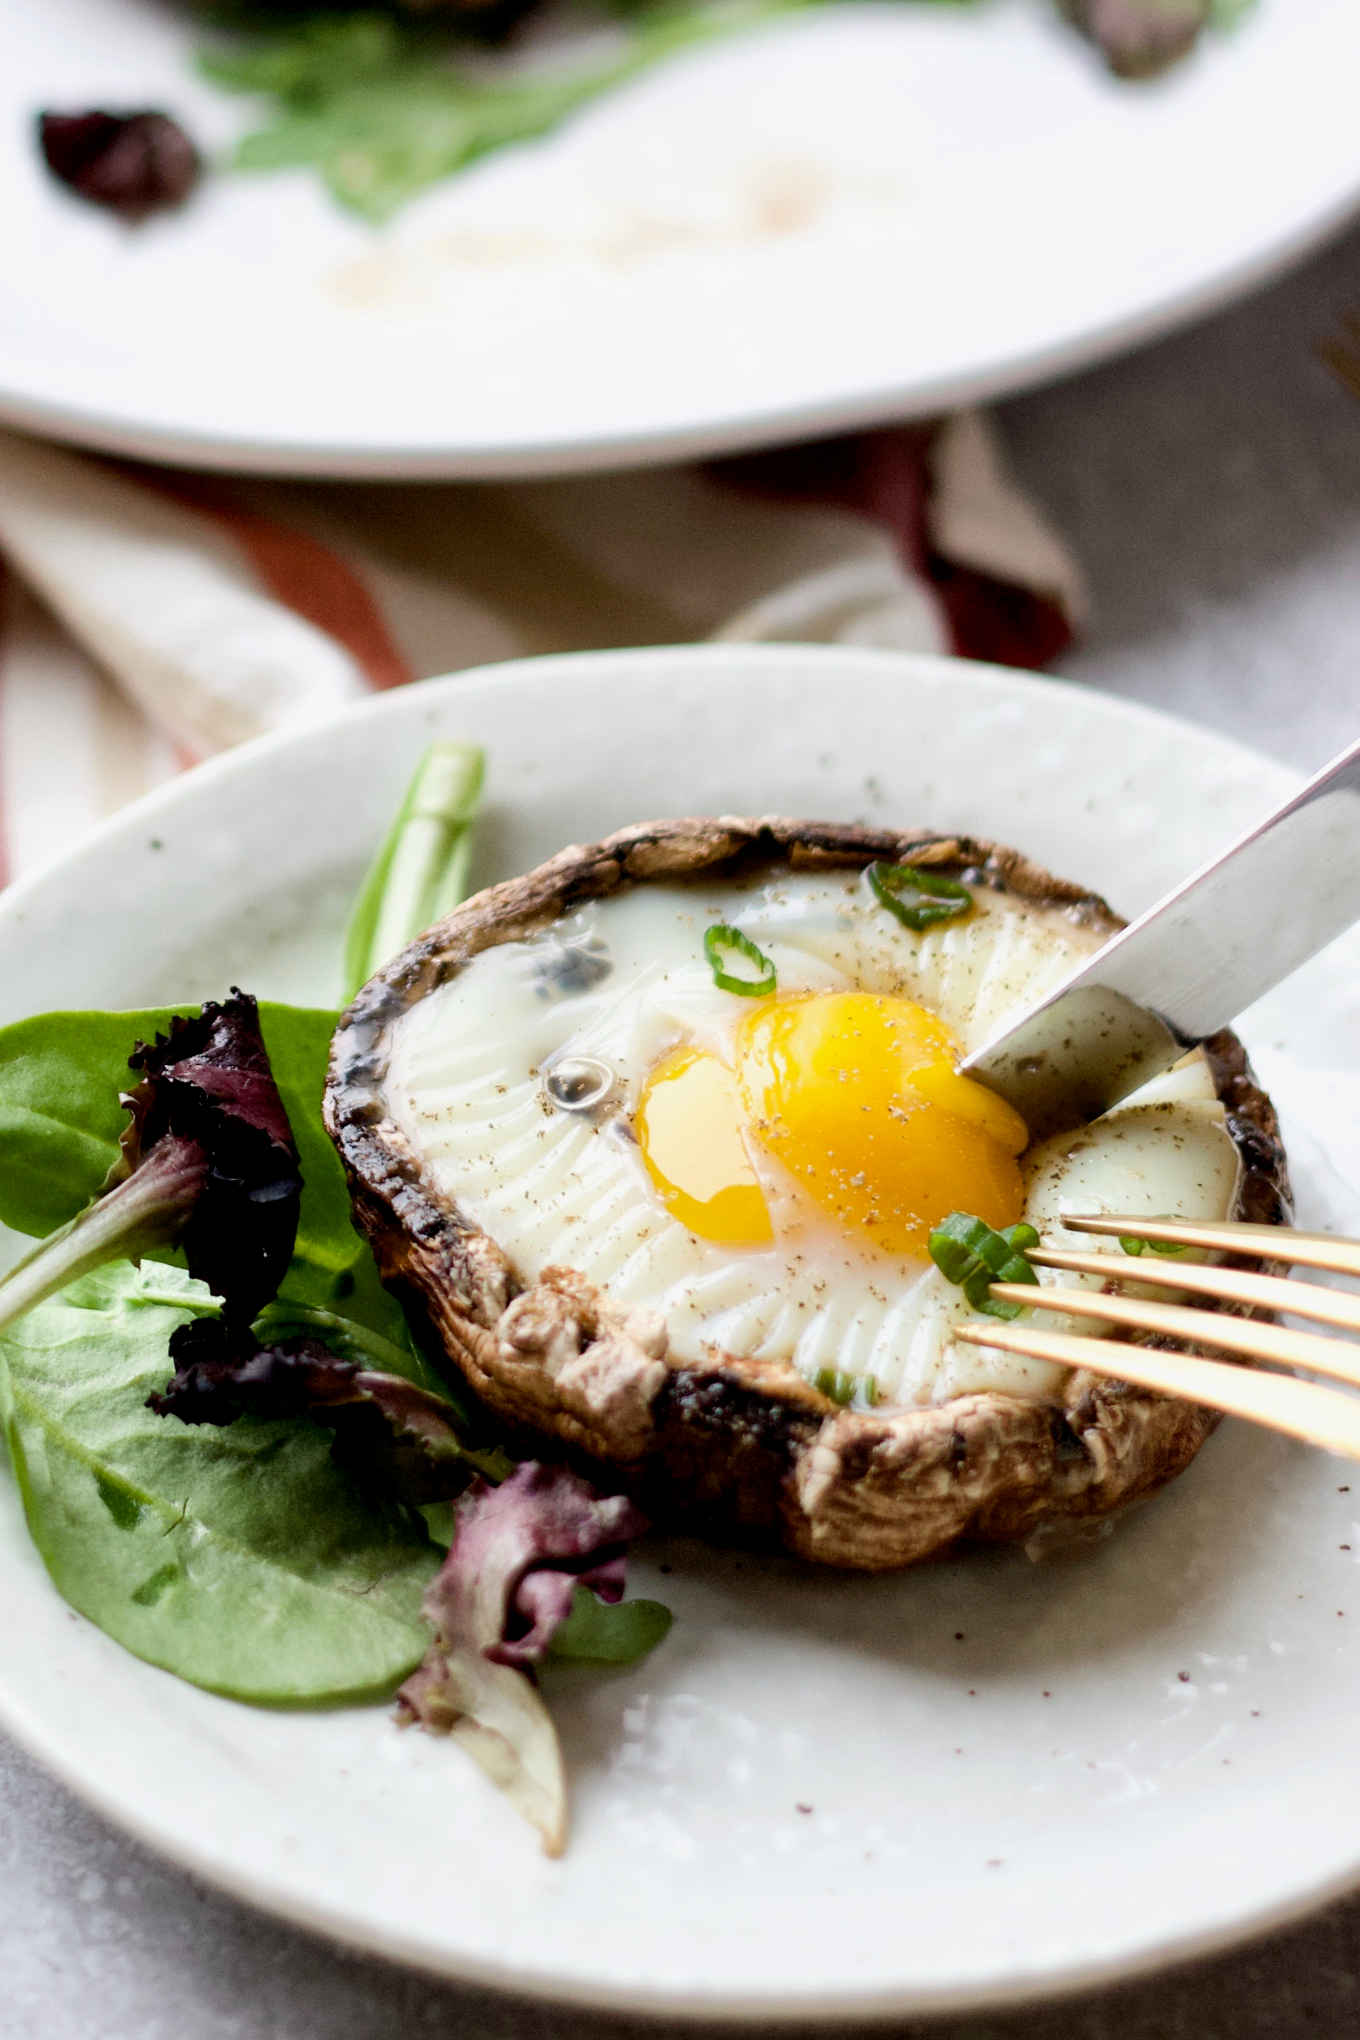 Baked Eggs In Portabella Mushroom Caps Paleo Keto Whole 30 Yang S Nourishing Kitchen